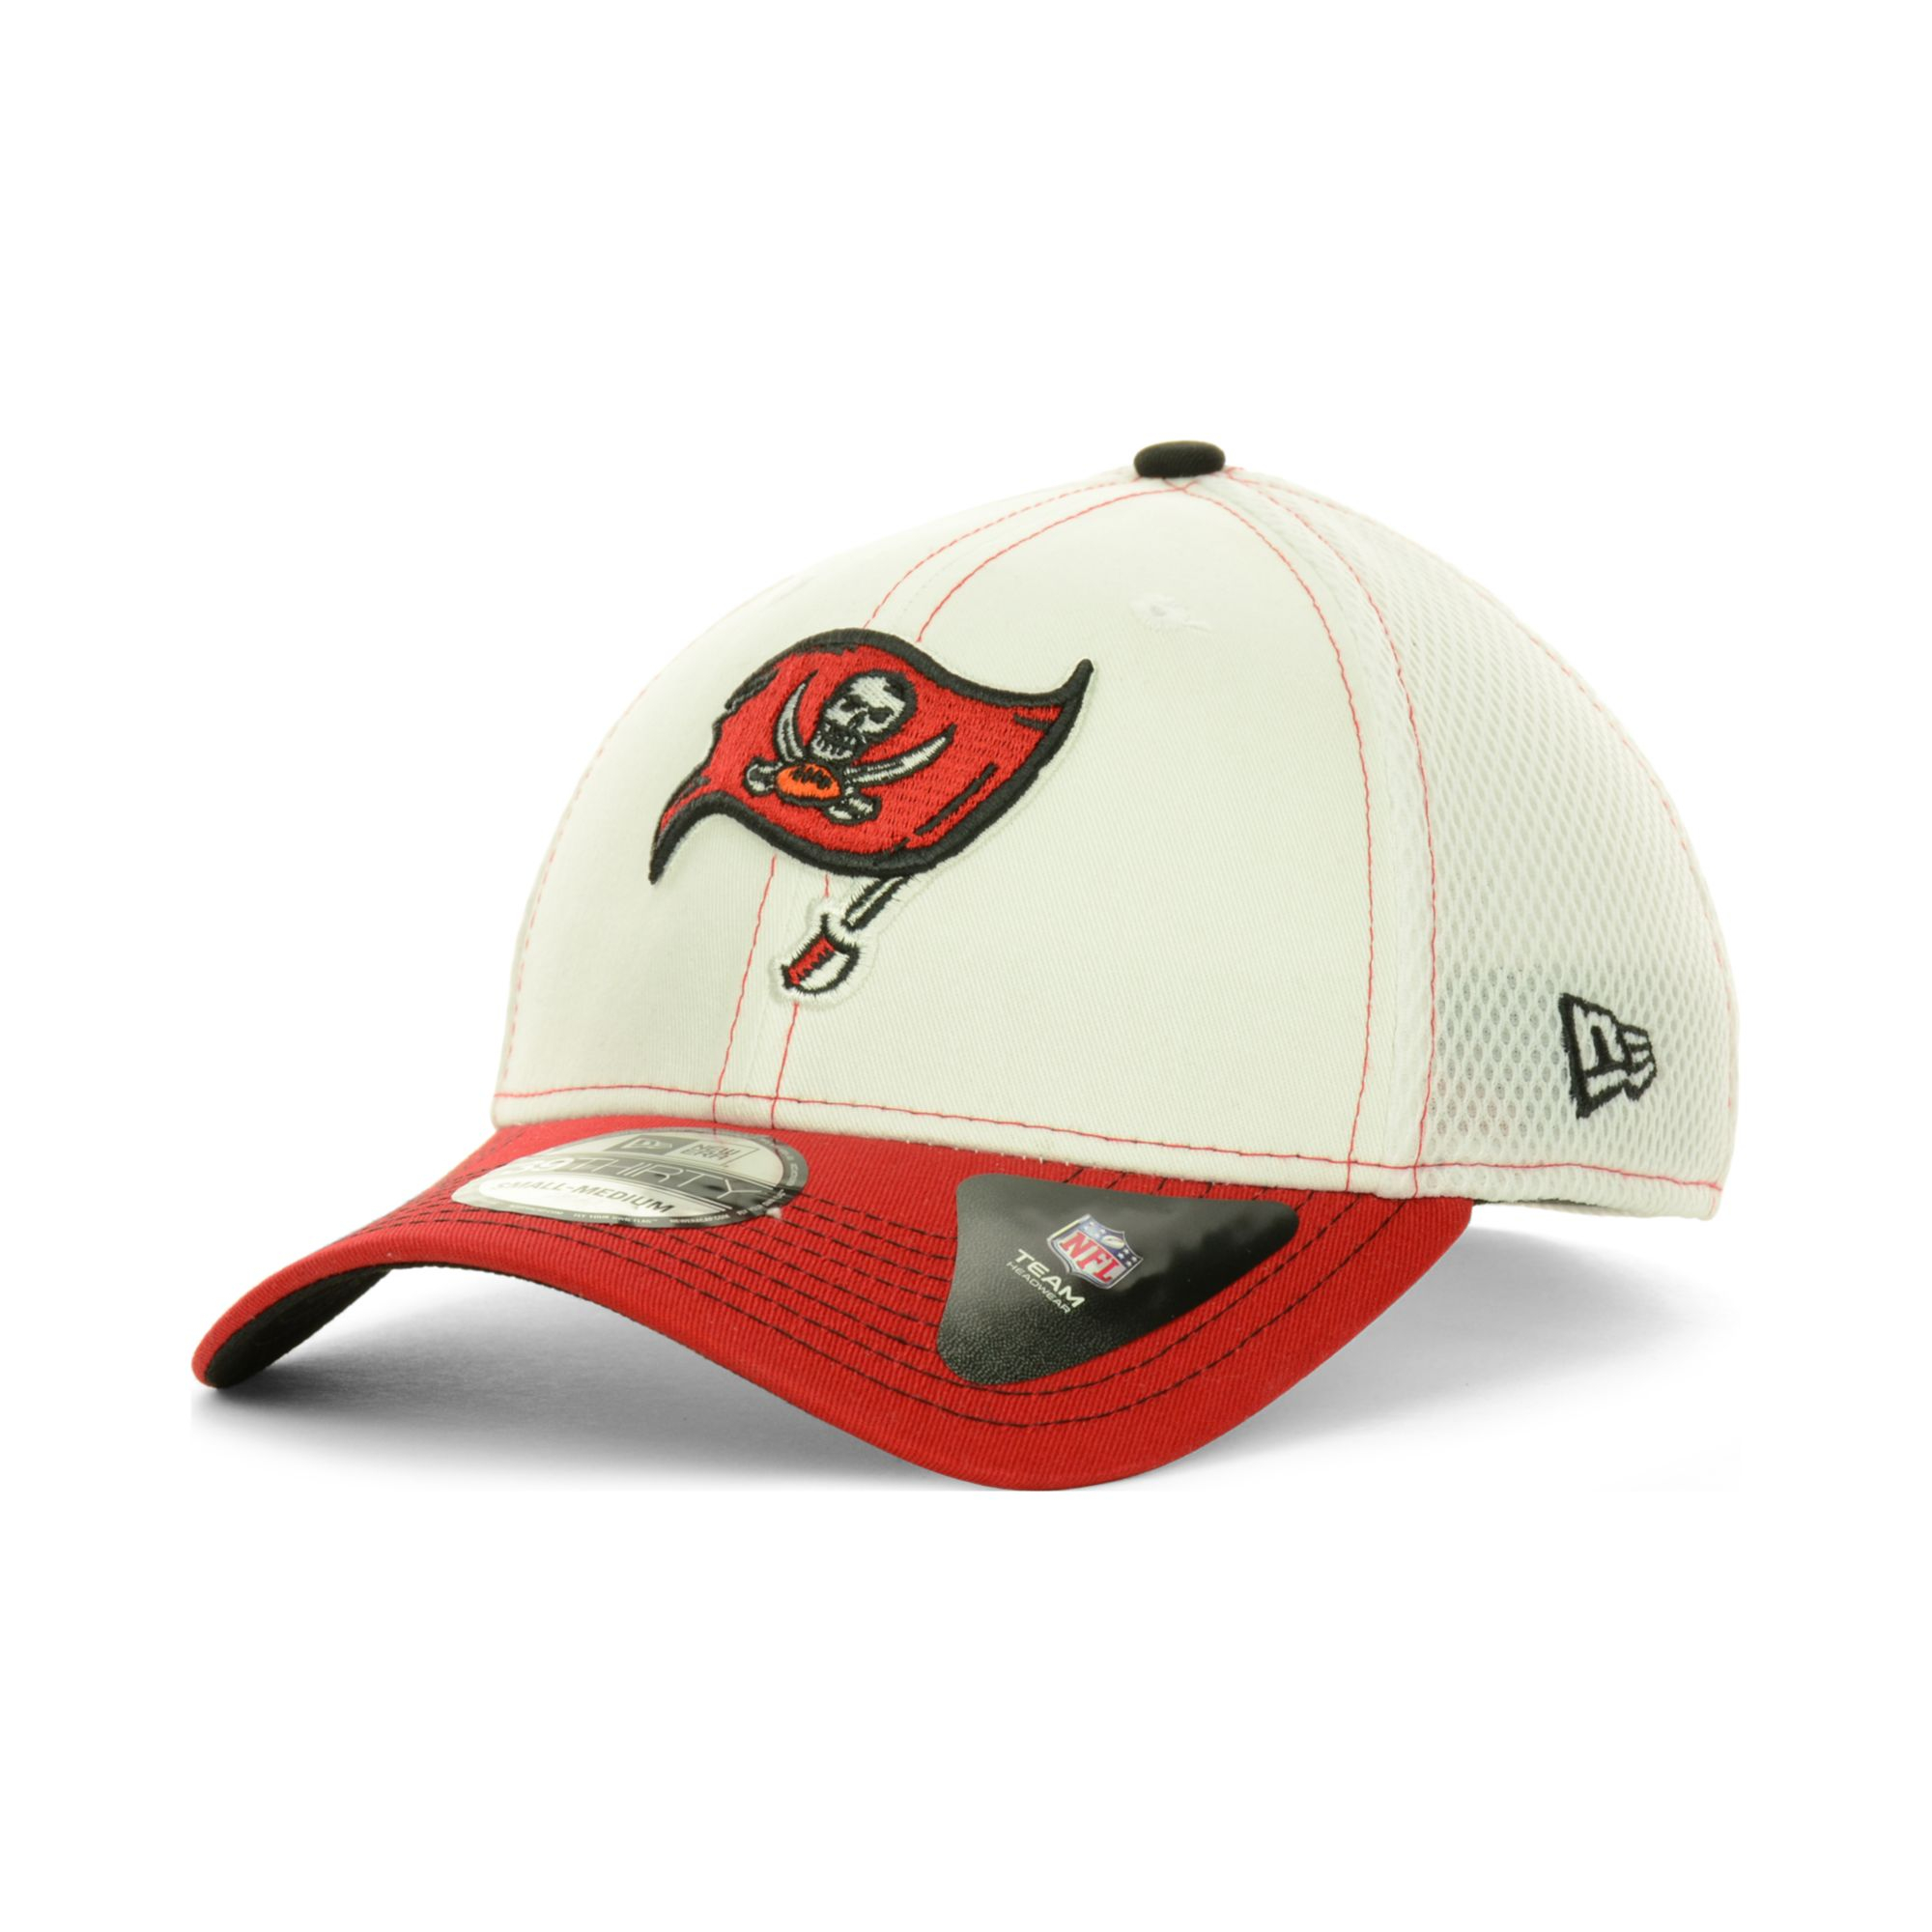 Lyst - Ktz Tampa Bay Buccaneers 39thirty Flex Hat in Red for Men d7ac63e7a971